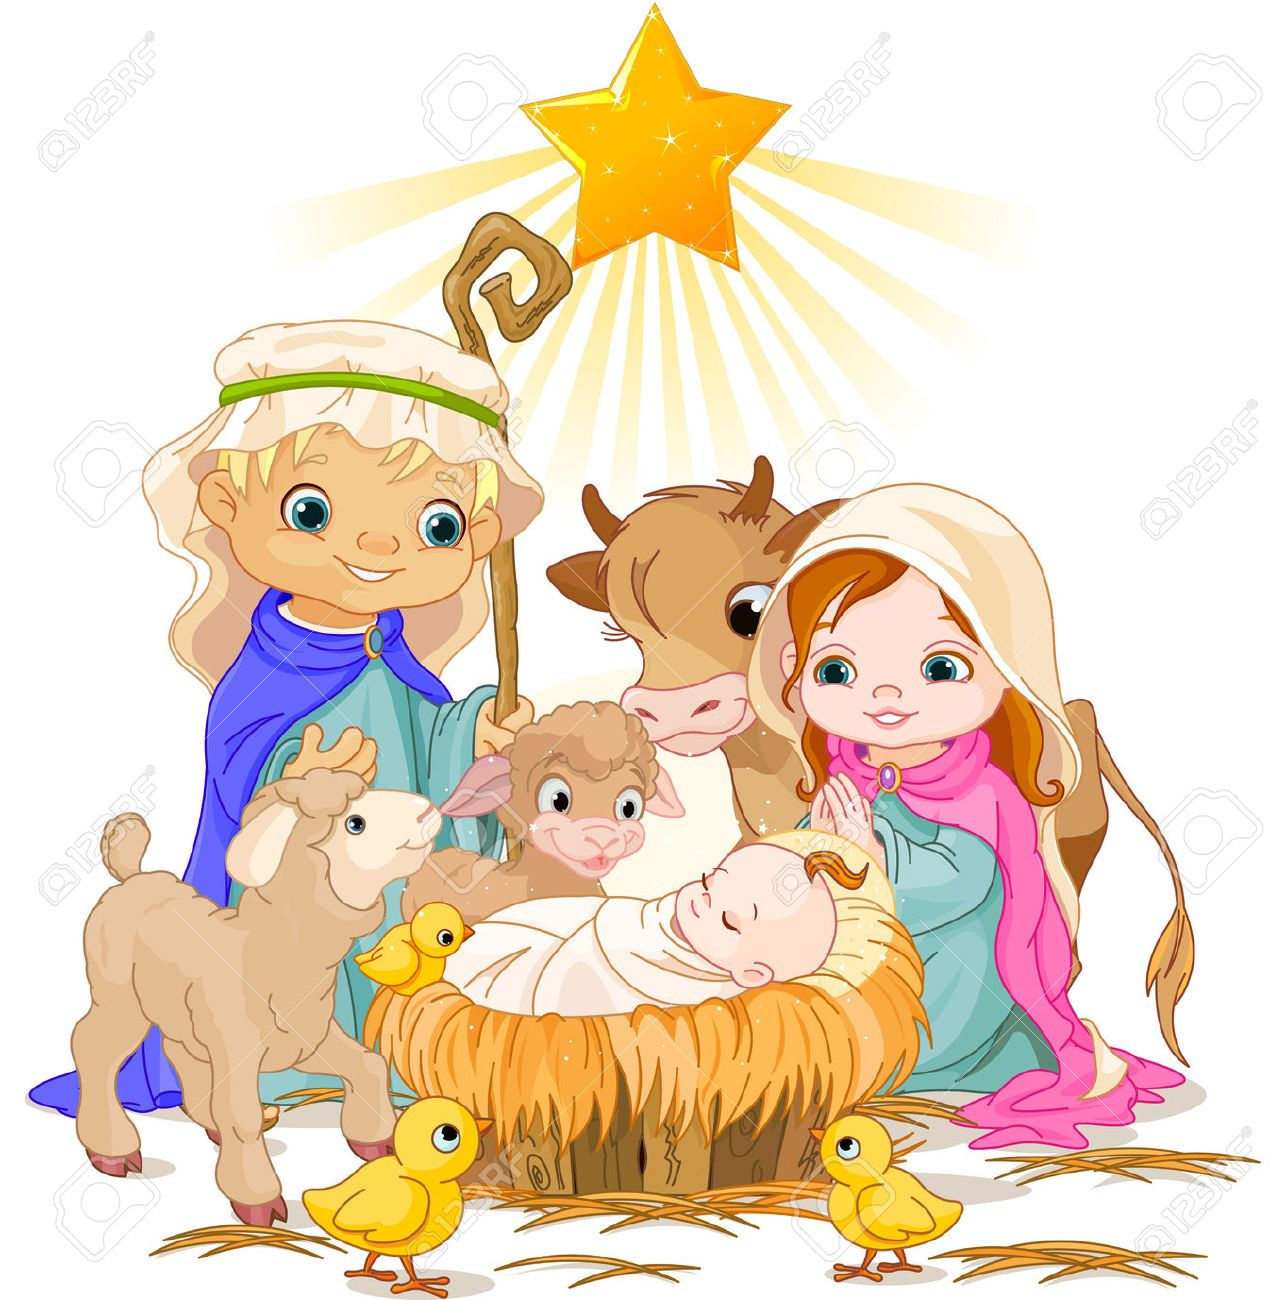 Outdoor Christmas Decorations Clipart: Religious Christmas Clipart Images - Google Search